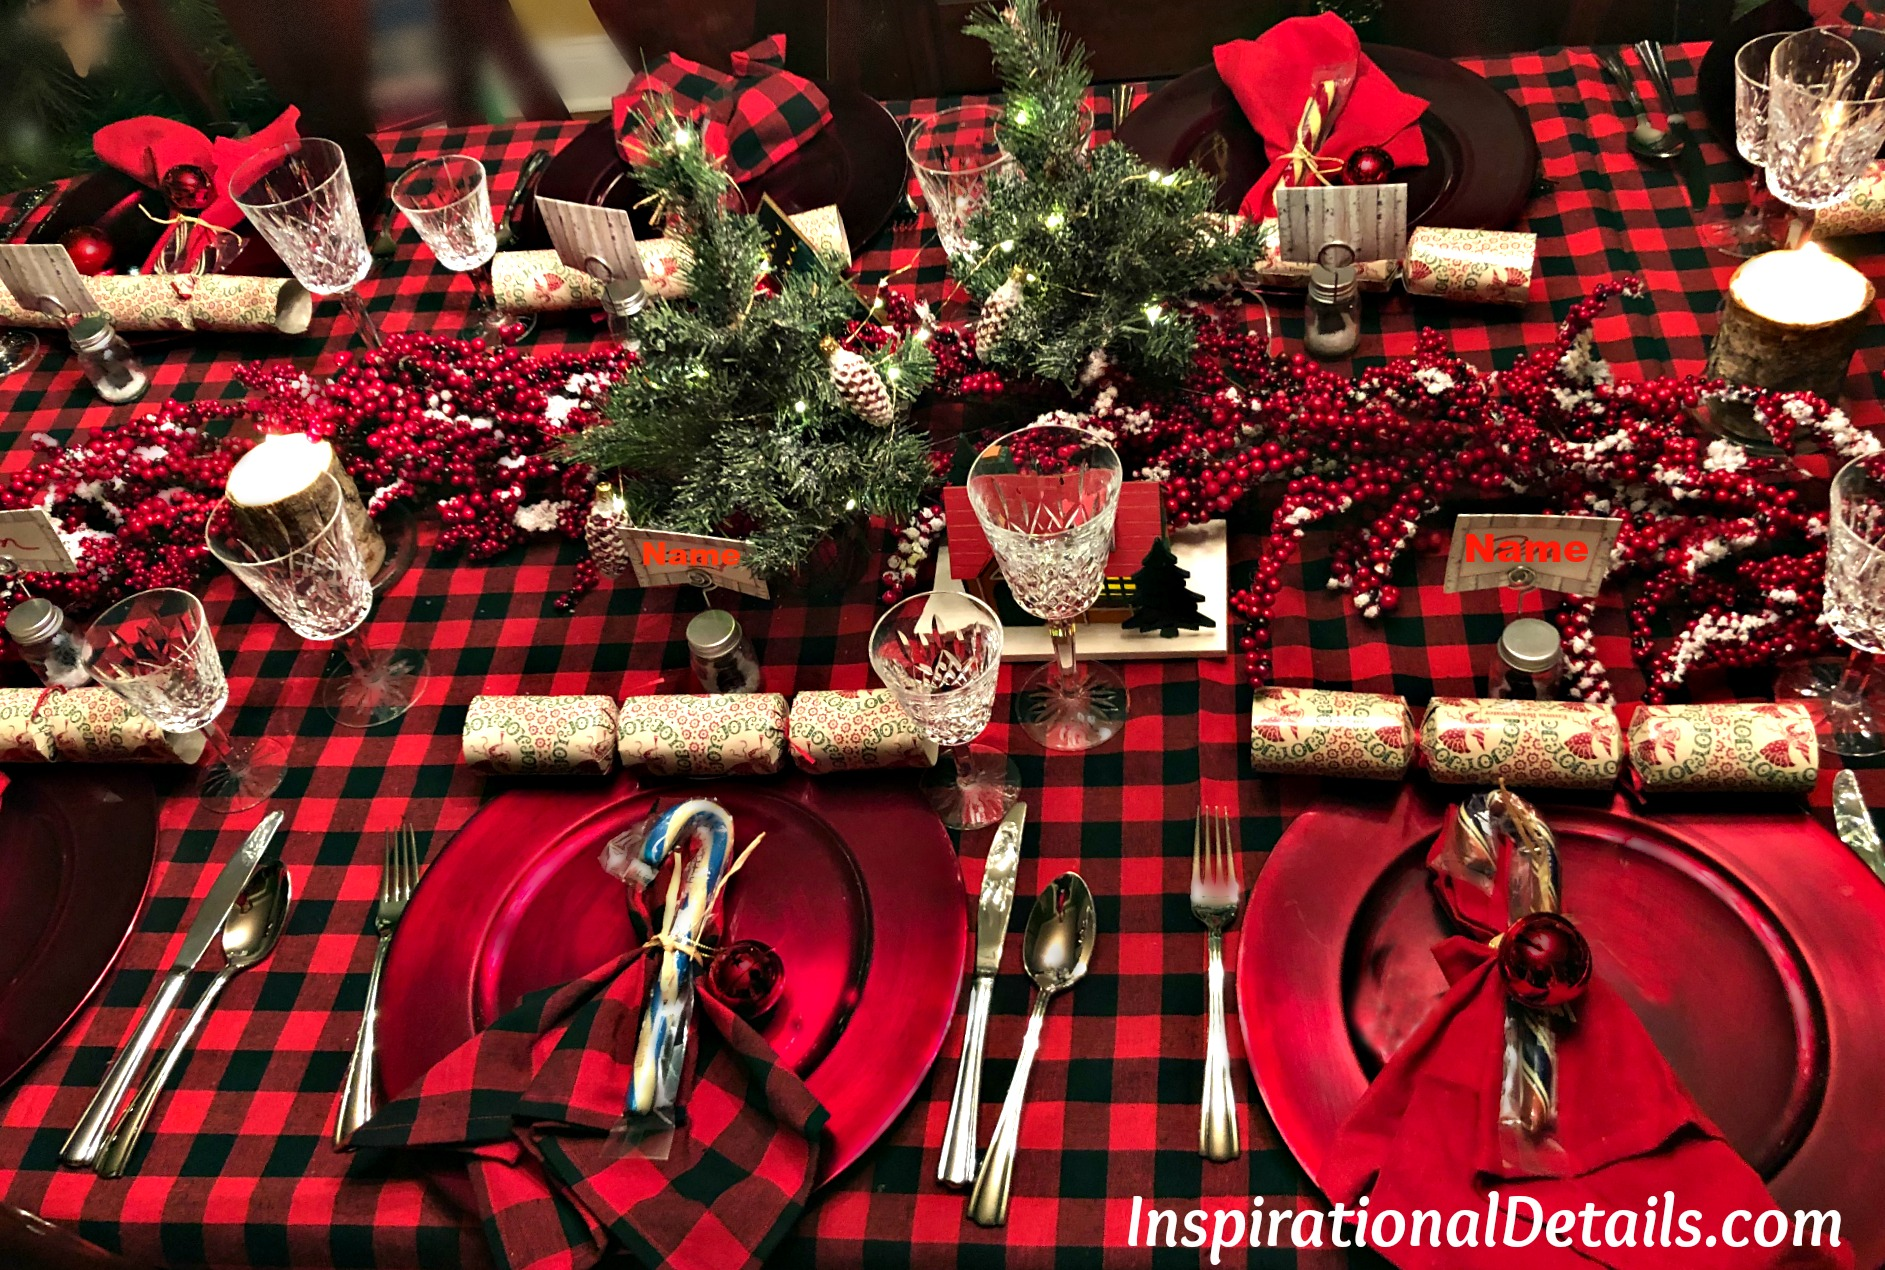 Christmas Dinner Party Ideas.An Up North Christmas Dinner Party Inspirational Details